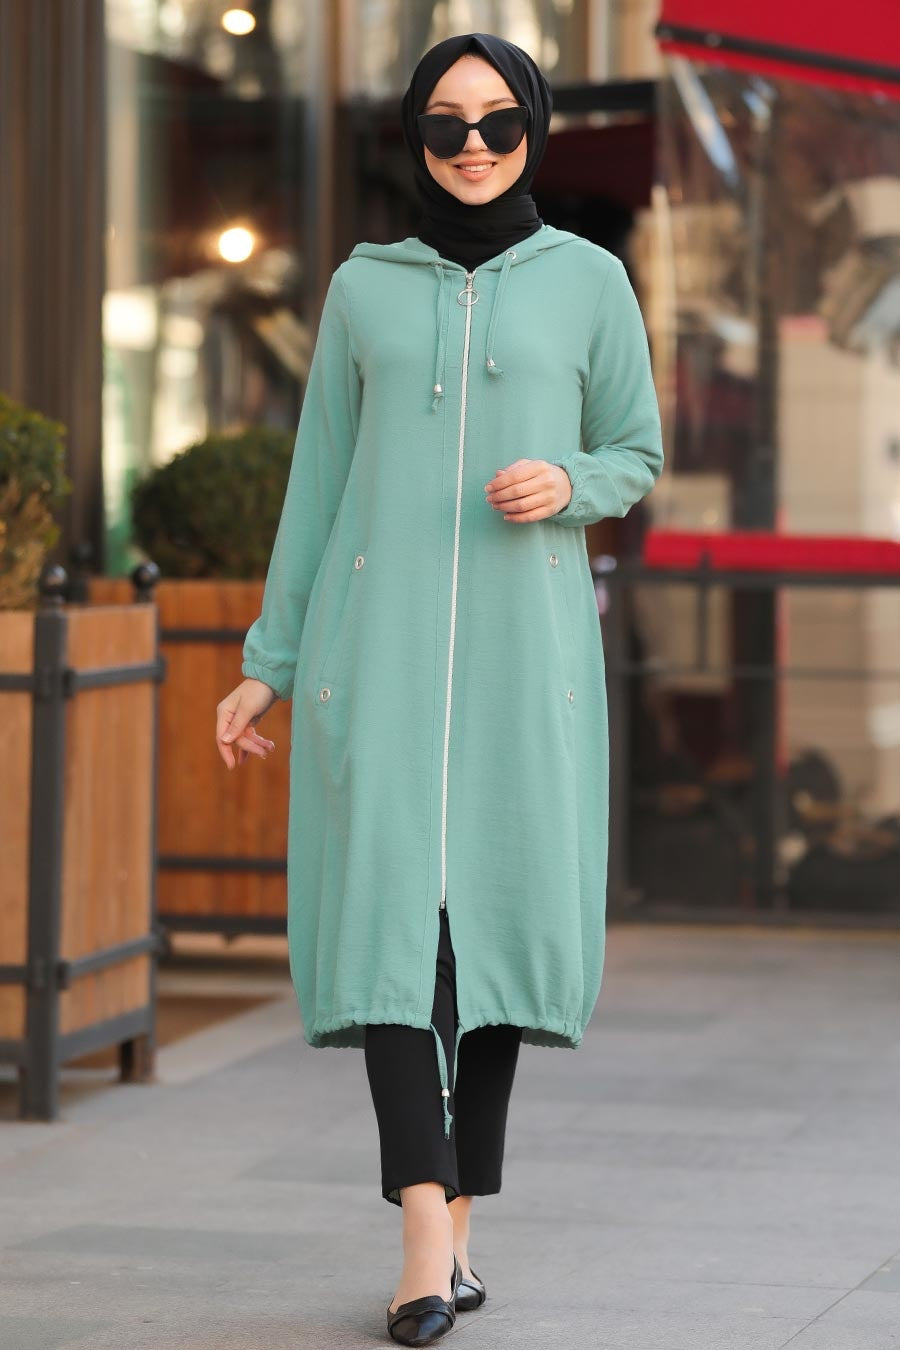 Women's Zipped Mint Green Modest Tunic